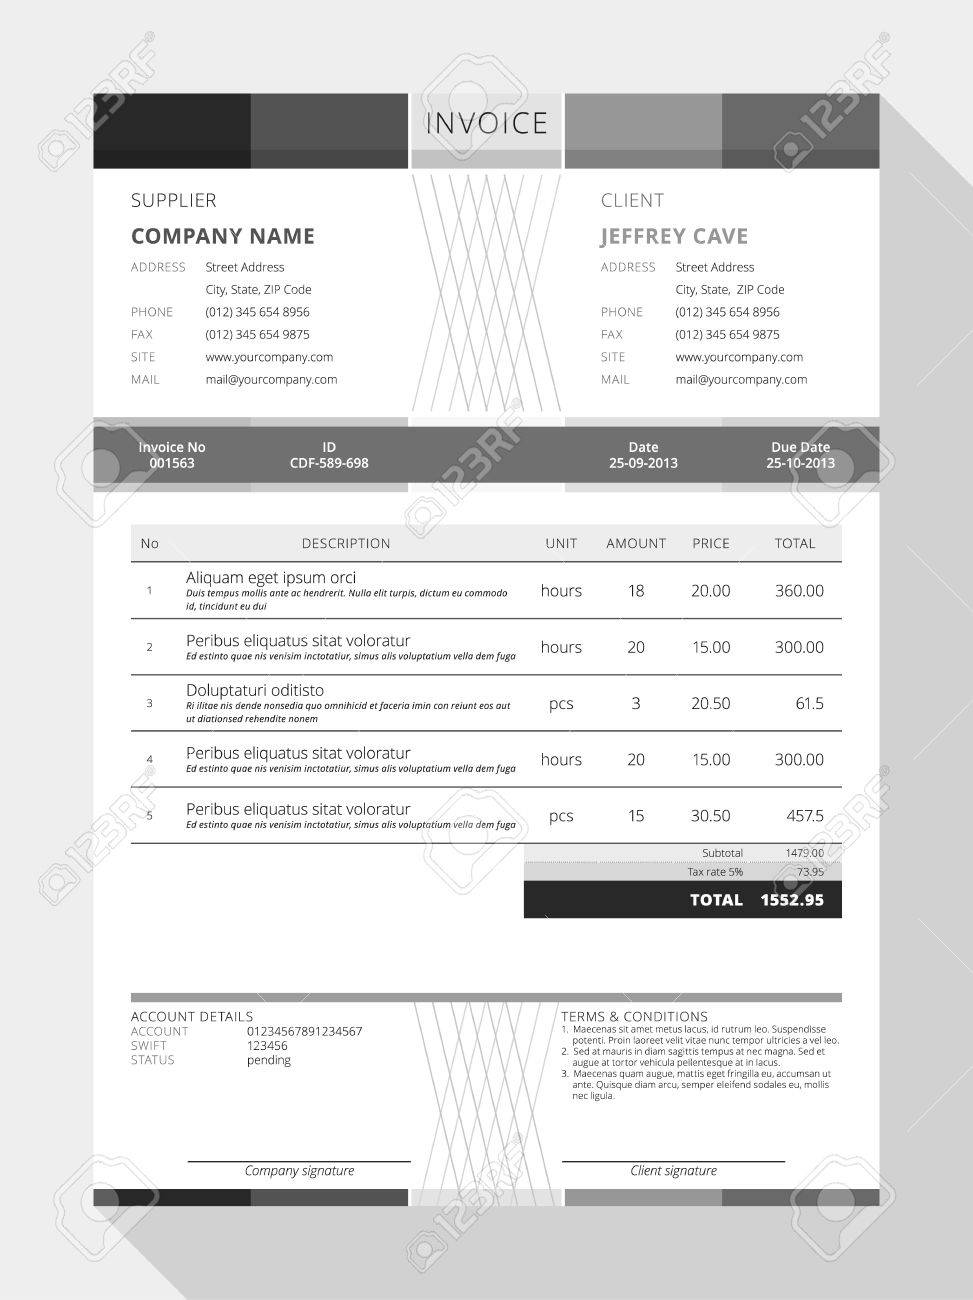 Modaoxus  Winsome Design An Invoice  Professional Graphic Design Invoice  With Outstanding Vector Customizable Invoice Form Template Design Vector   Design An Invoice With Charming Patient Invoice Also Printable Invoices Free In Addition Towing Invoices And Indesign Invoice Template As Well As How To Pay An Invoice Additionally Free Invoice Software Download From Happytomco With Modaoxus  Outstanding Design An Invoice  Professional Graphic Design Invoice  With Charming Vector Customizable Invoice Form Template Design Vector   Design An Invoice And Winsome Patient Invoice Also Printable Invoices Free In Addition Towing Invoices From Happytomco